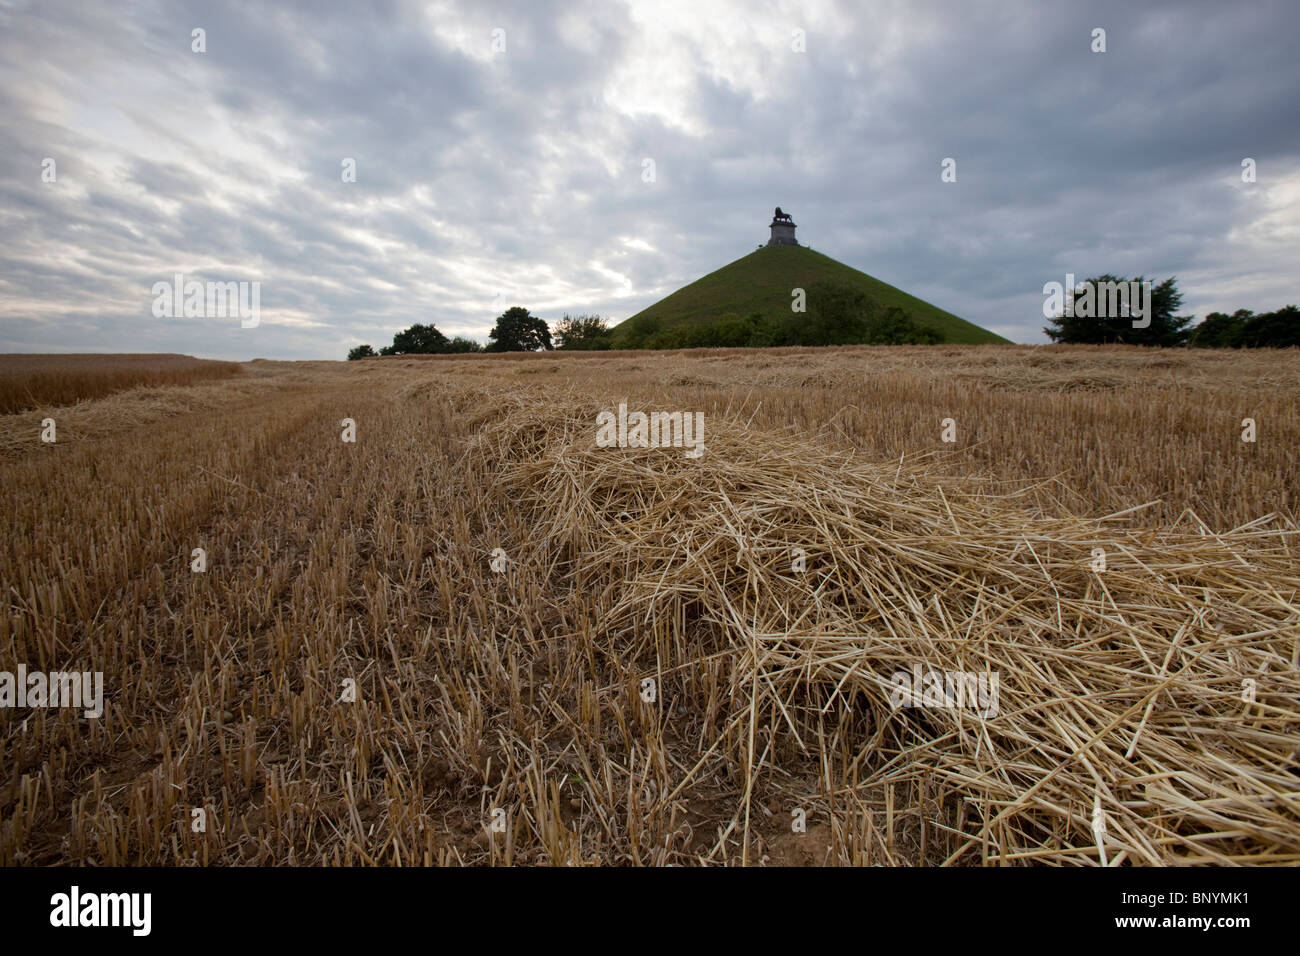 Wide angle shot of dry stalks of freshly cut barley with the Lion Mound monument showing in the background, Waterloo, - Stock Image